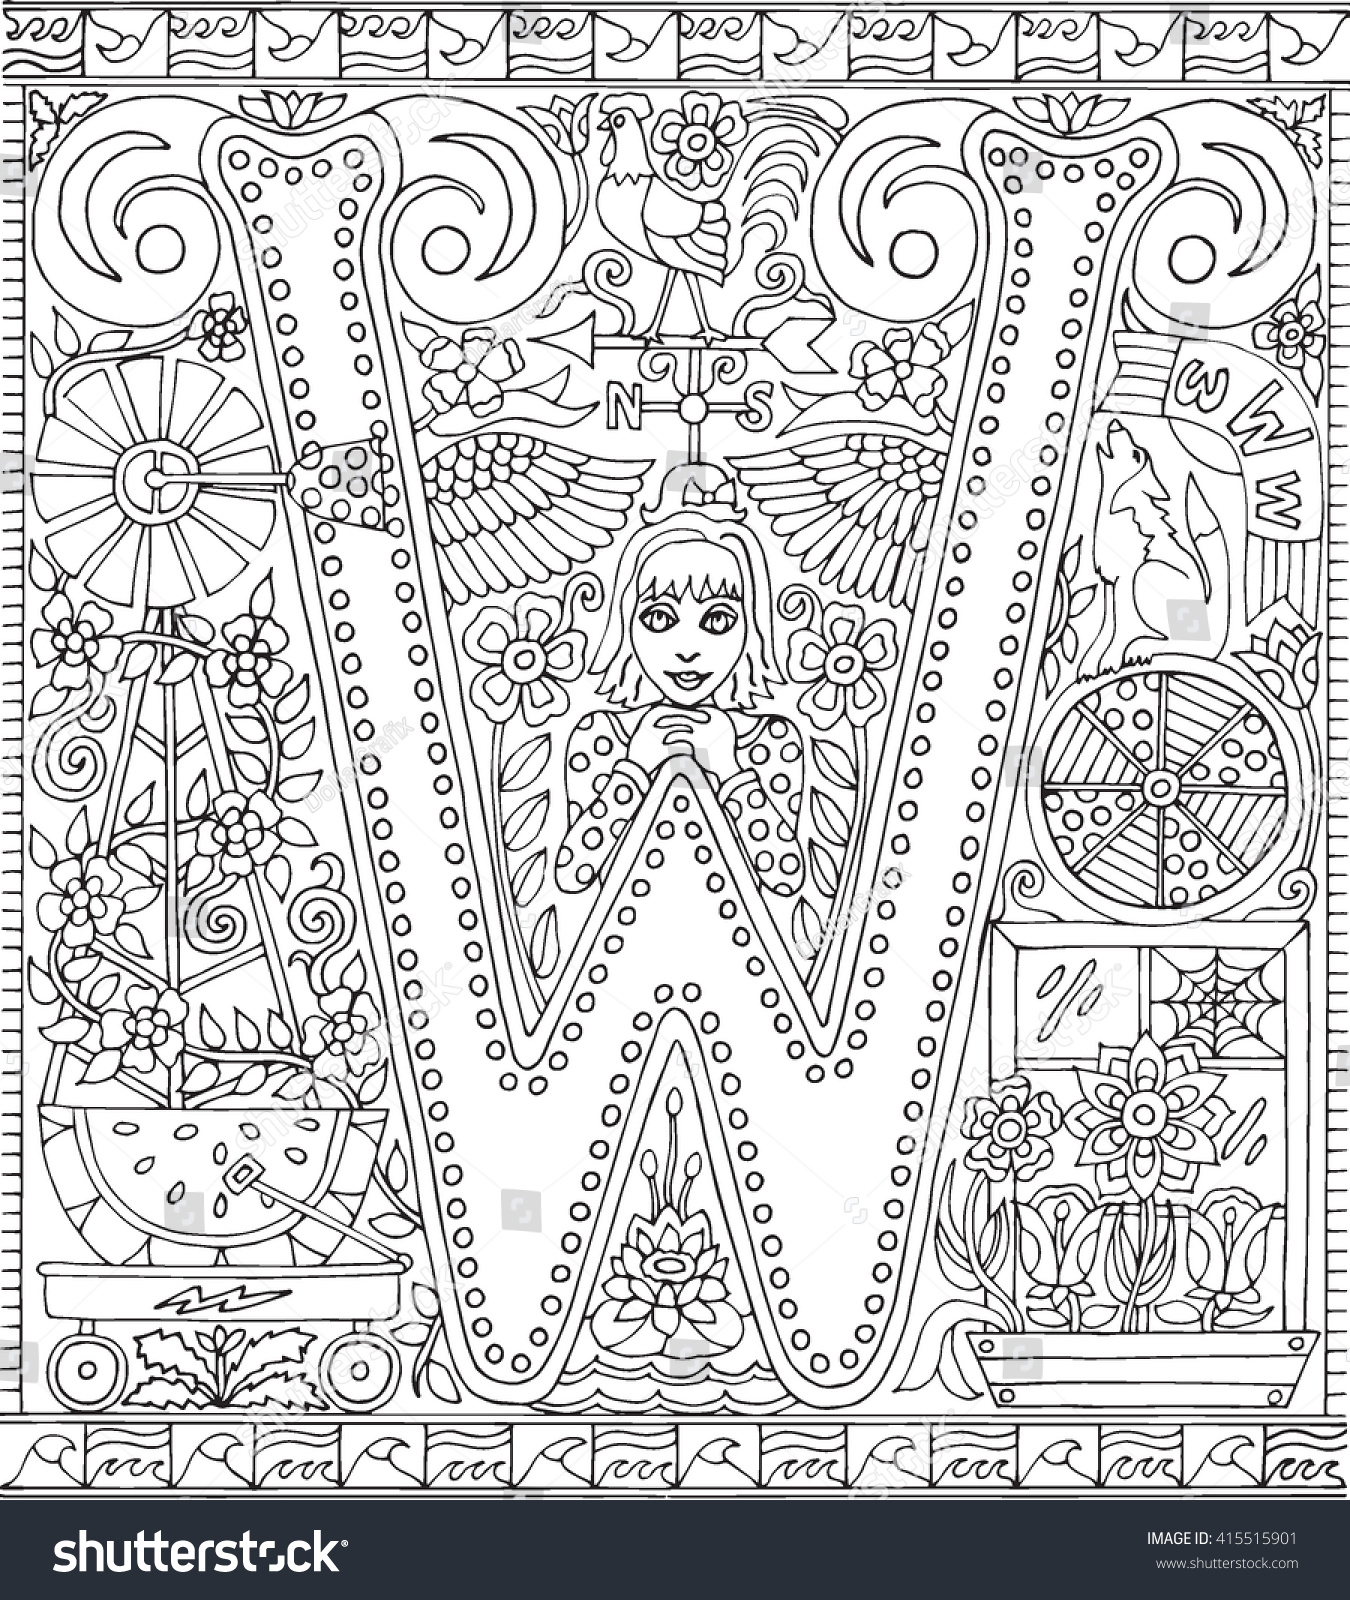 Alphabet Letter W Adult Coloring Book Stock Vector